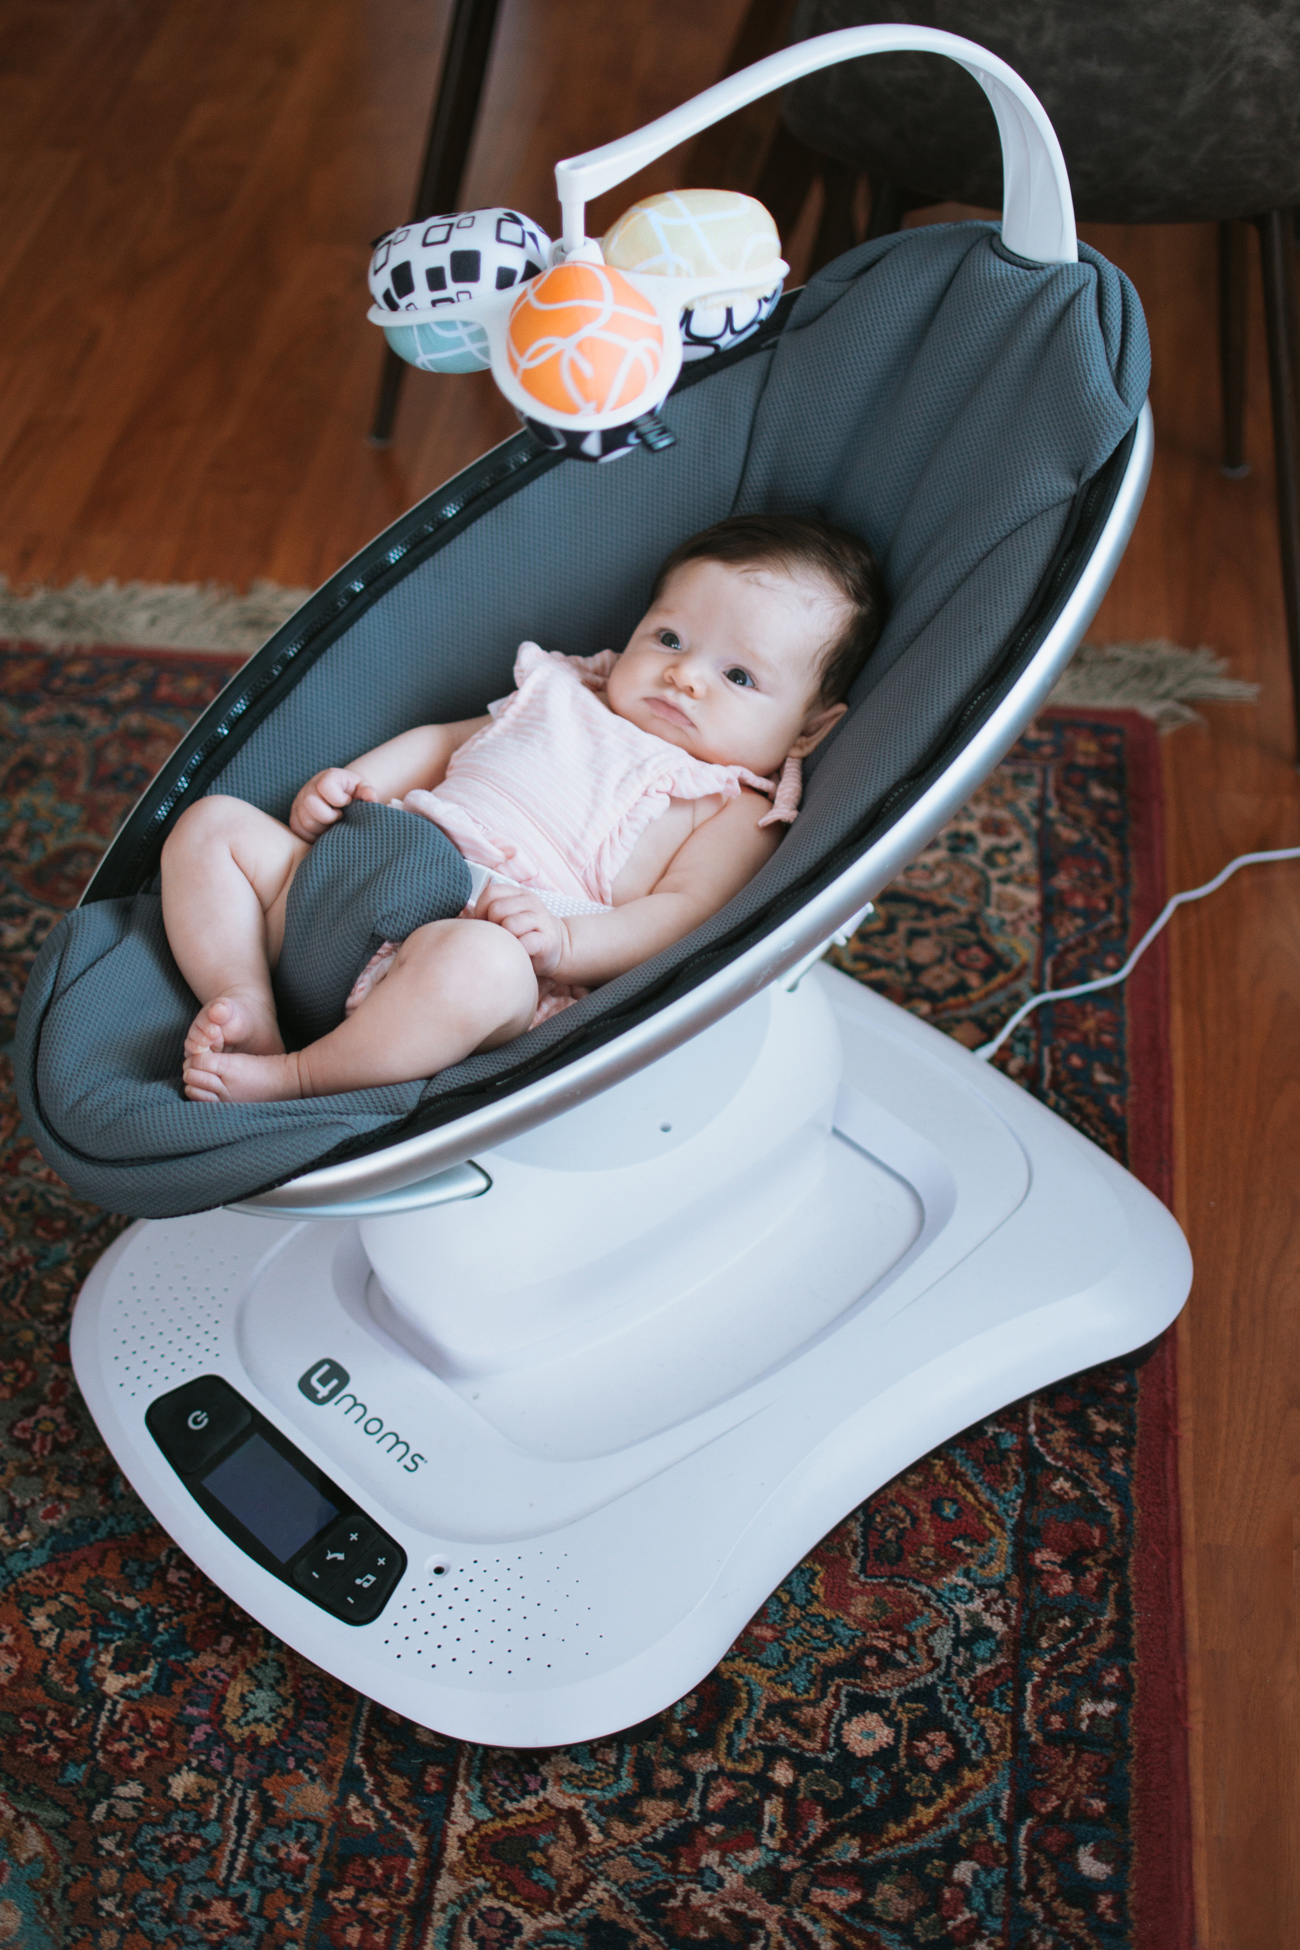 4Moms Mamaroo Review via. The Pacific Standard | www.ThePacificStandard.com